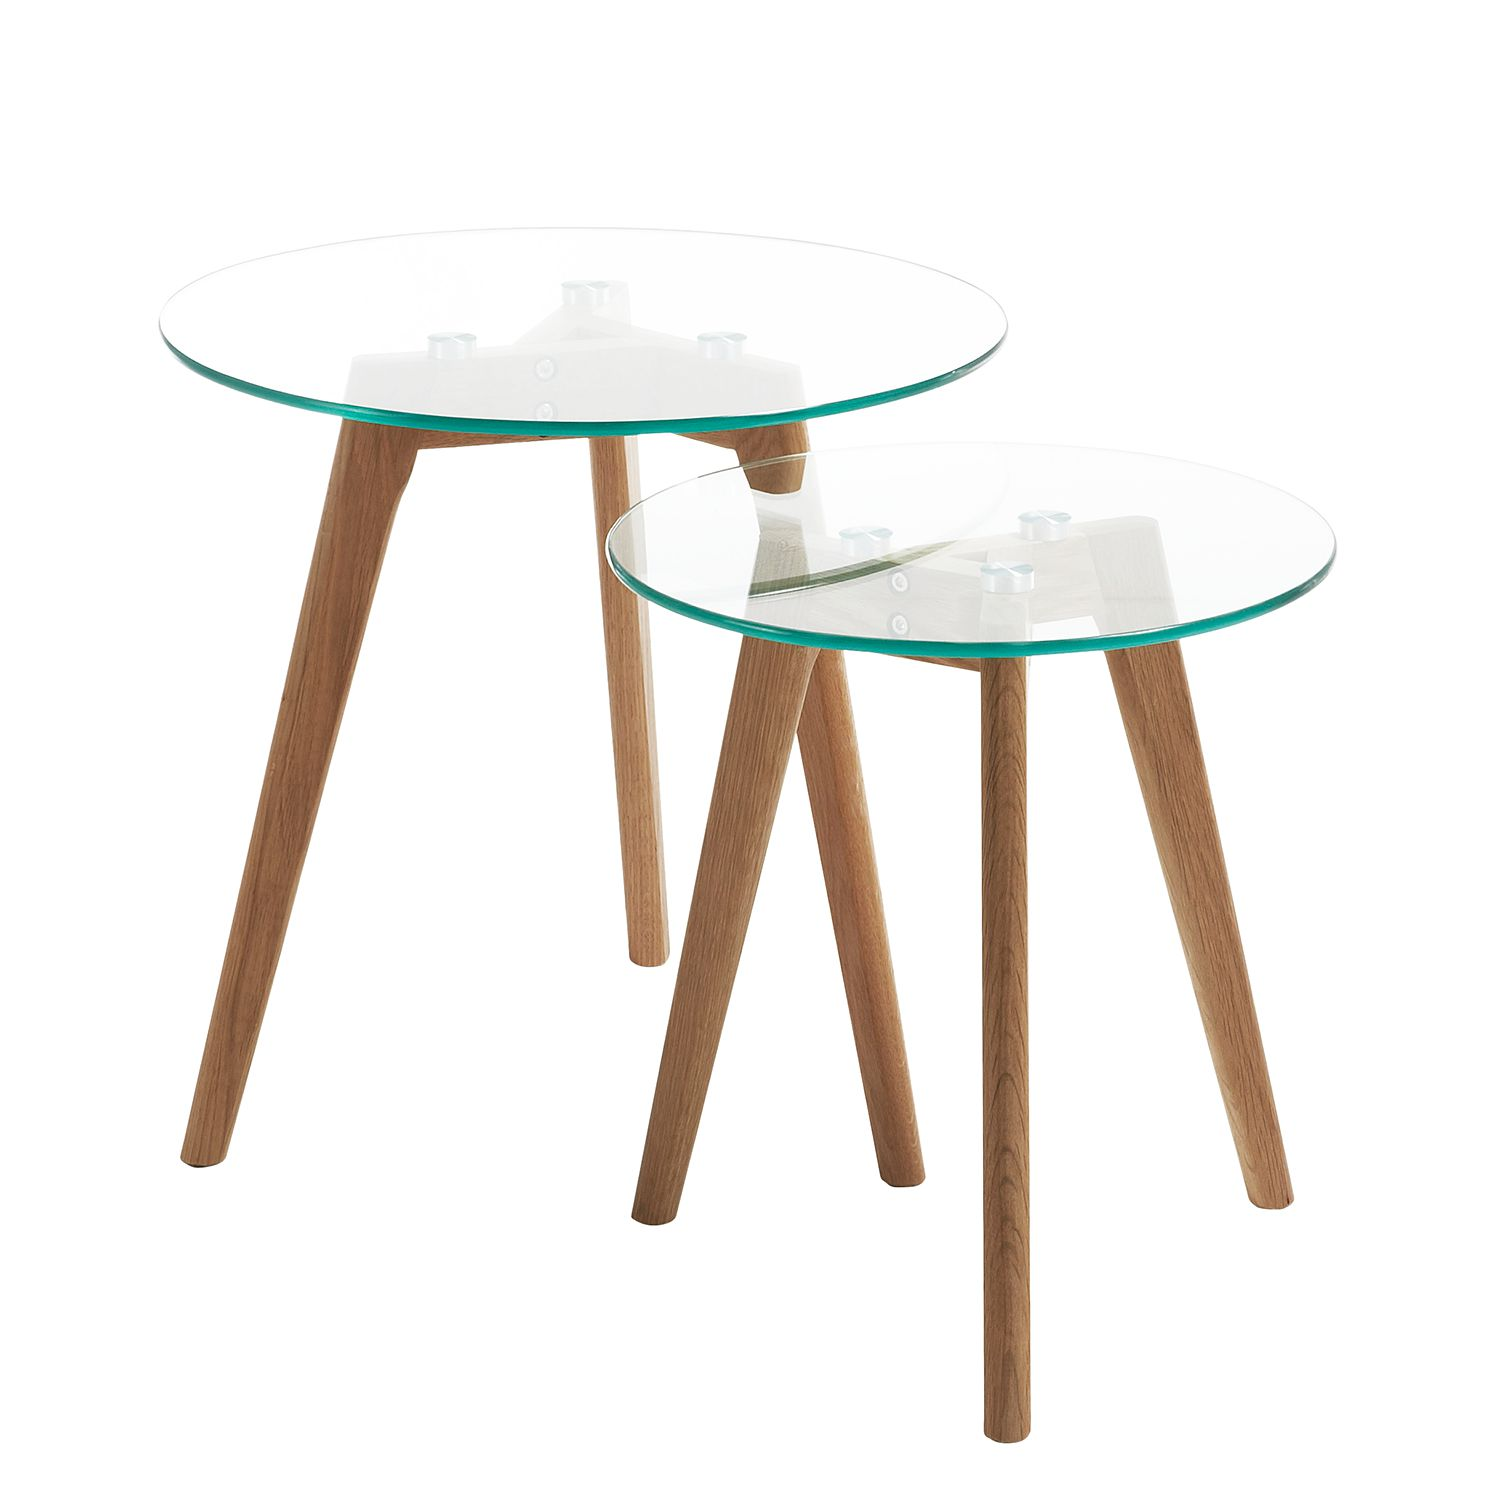 Table d'appoint Lingbo (lot de 2 chaises), Morteens